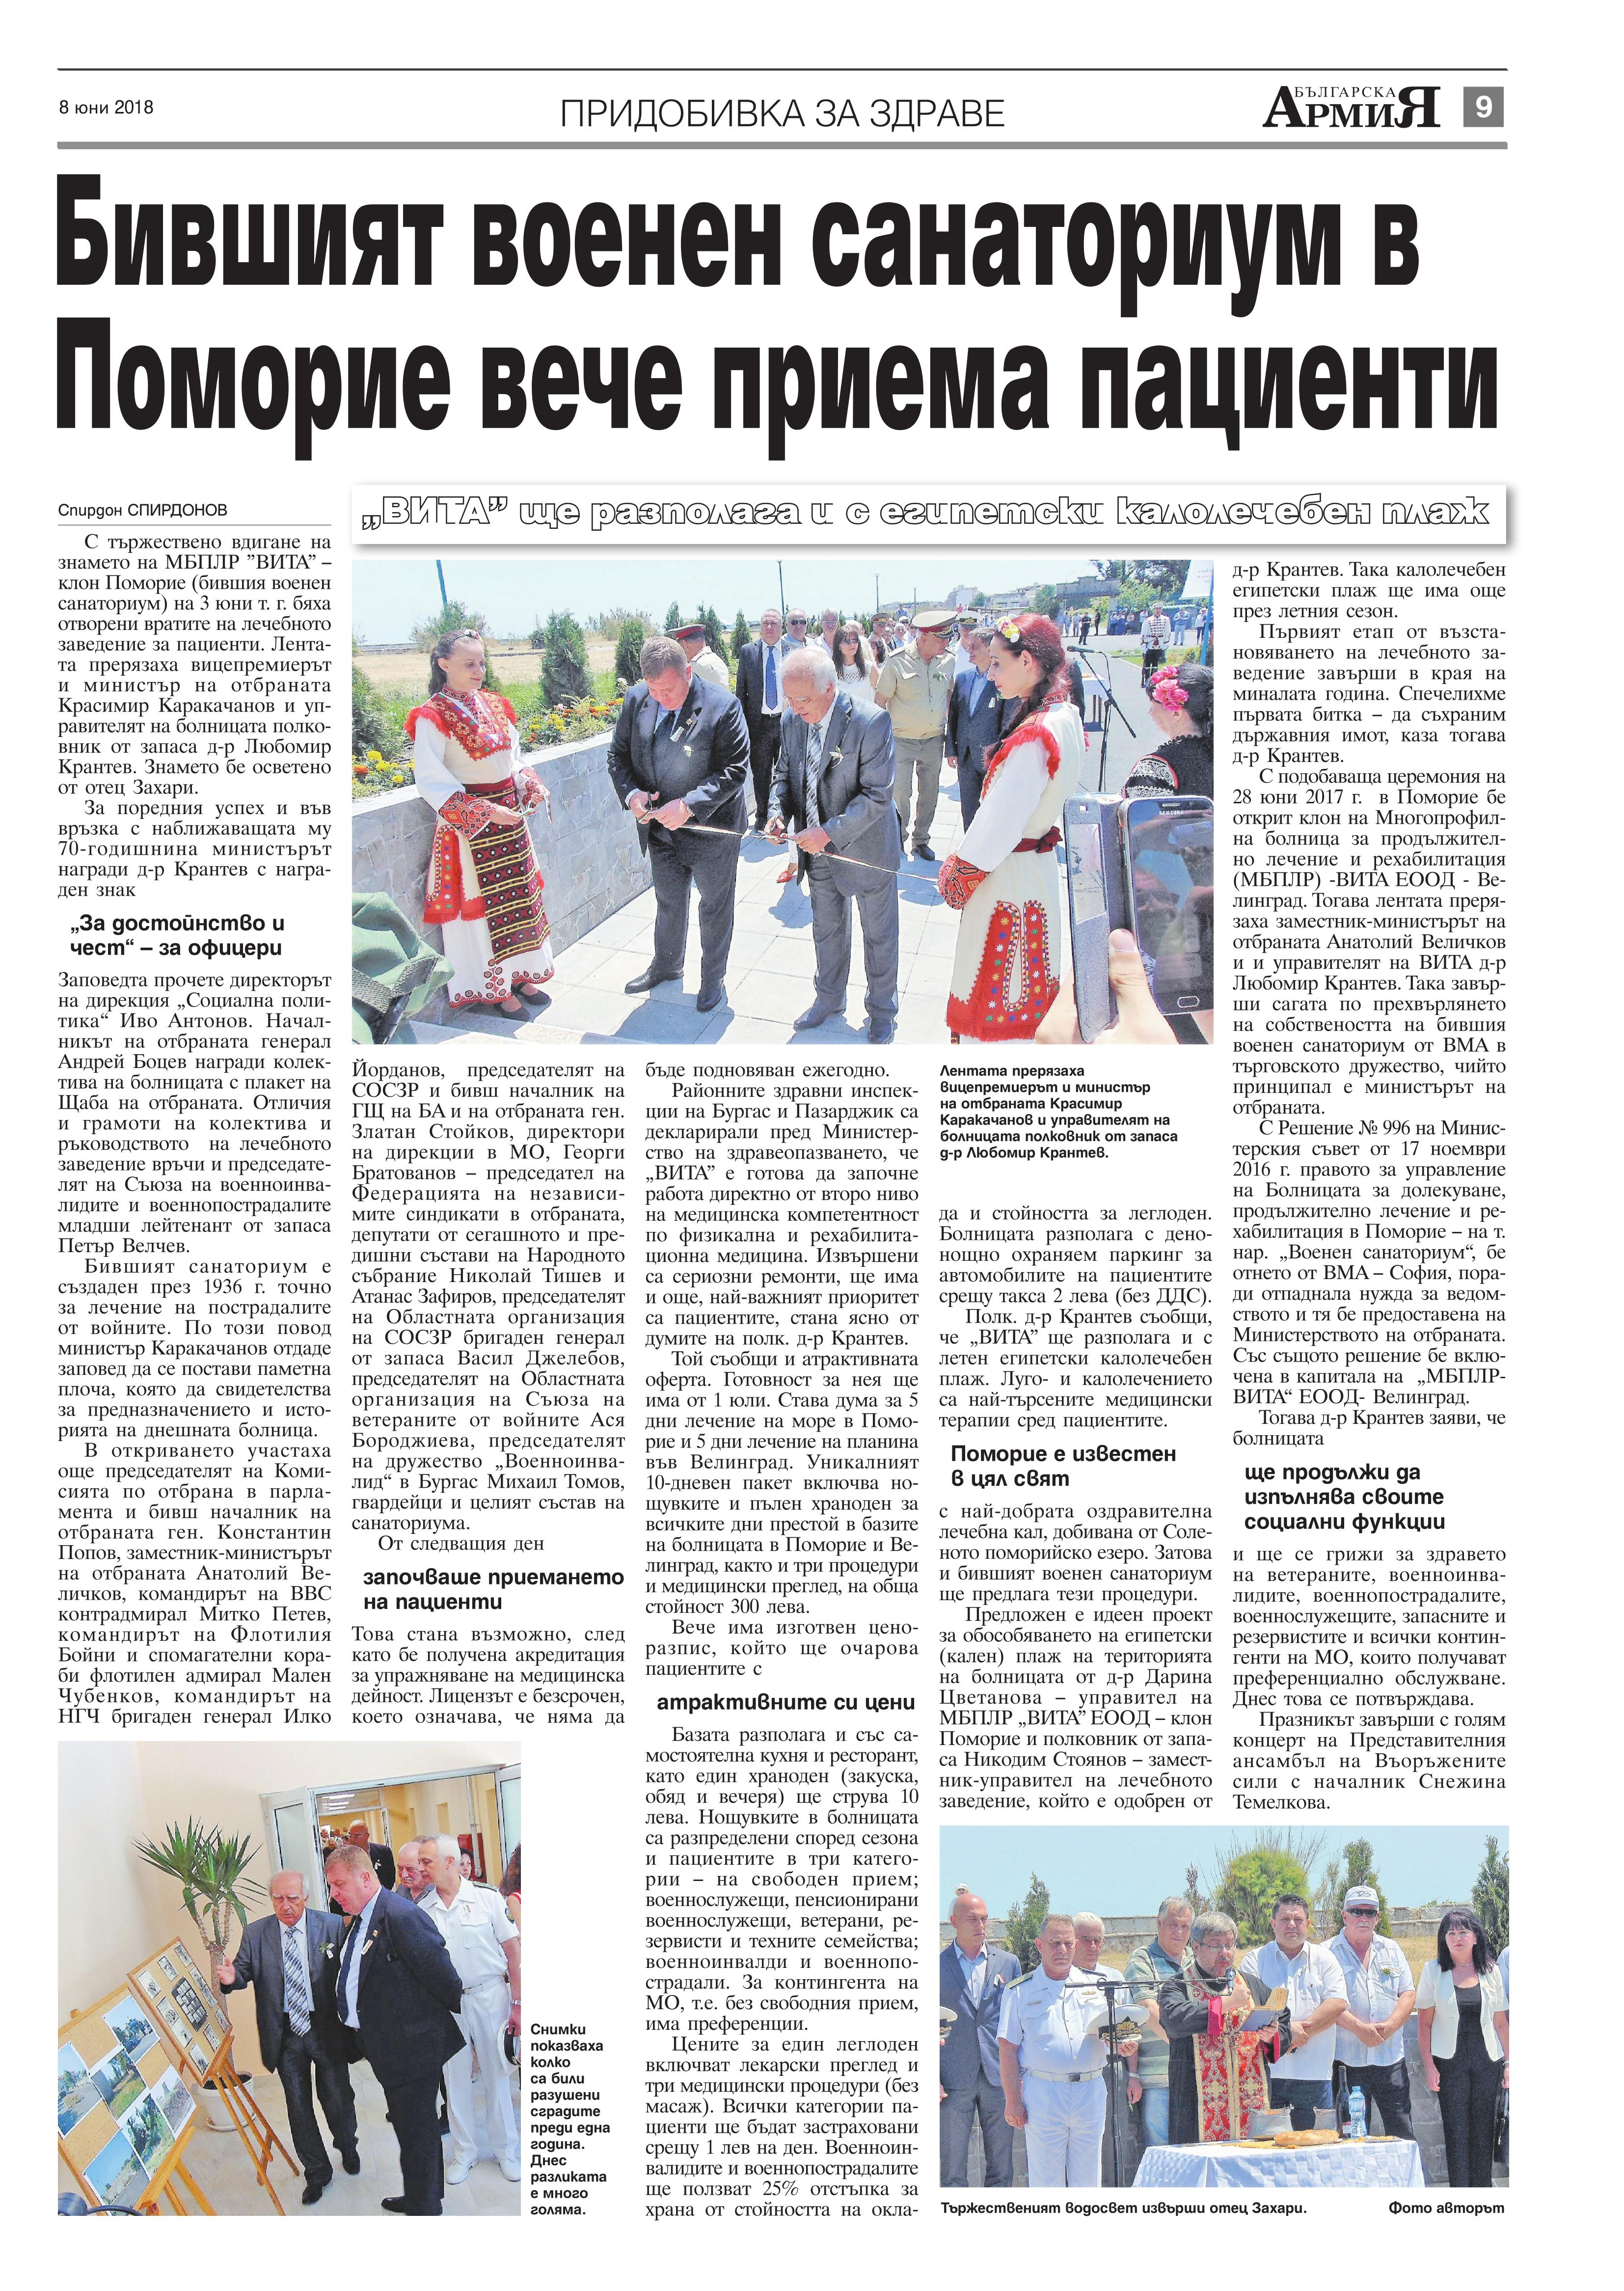 https://armymedia.bg/wp-content/uploads/2015/06/09.page1_-52.jpg